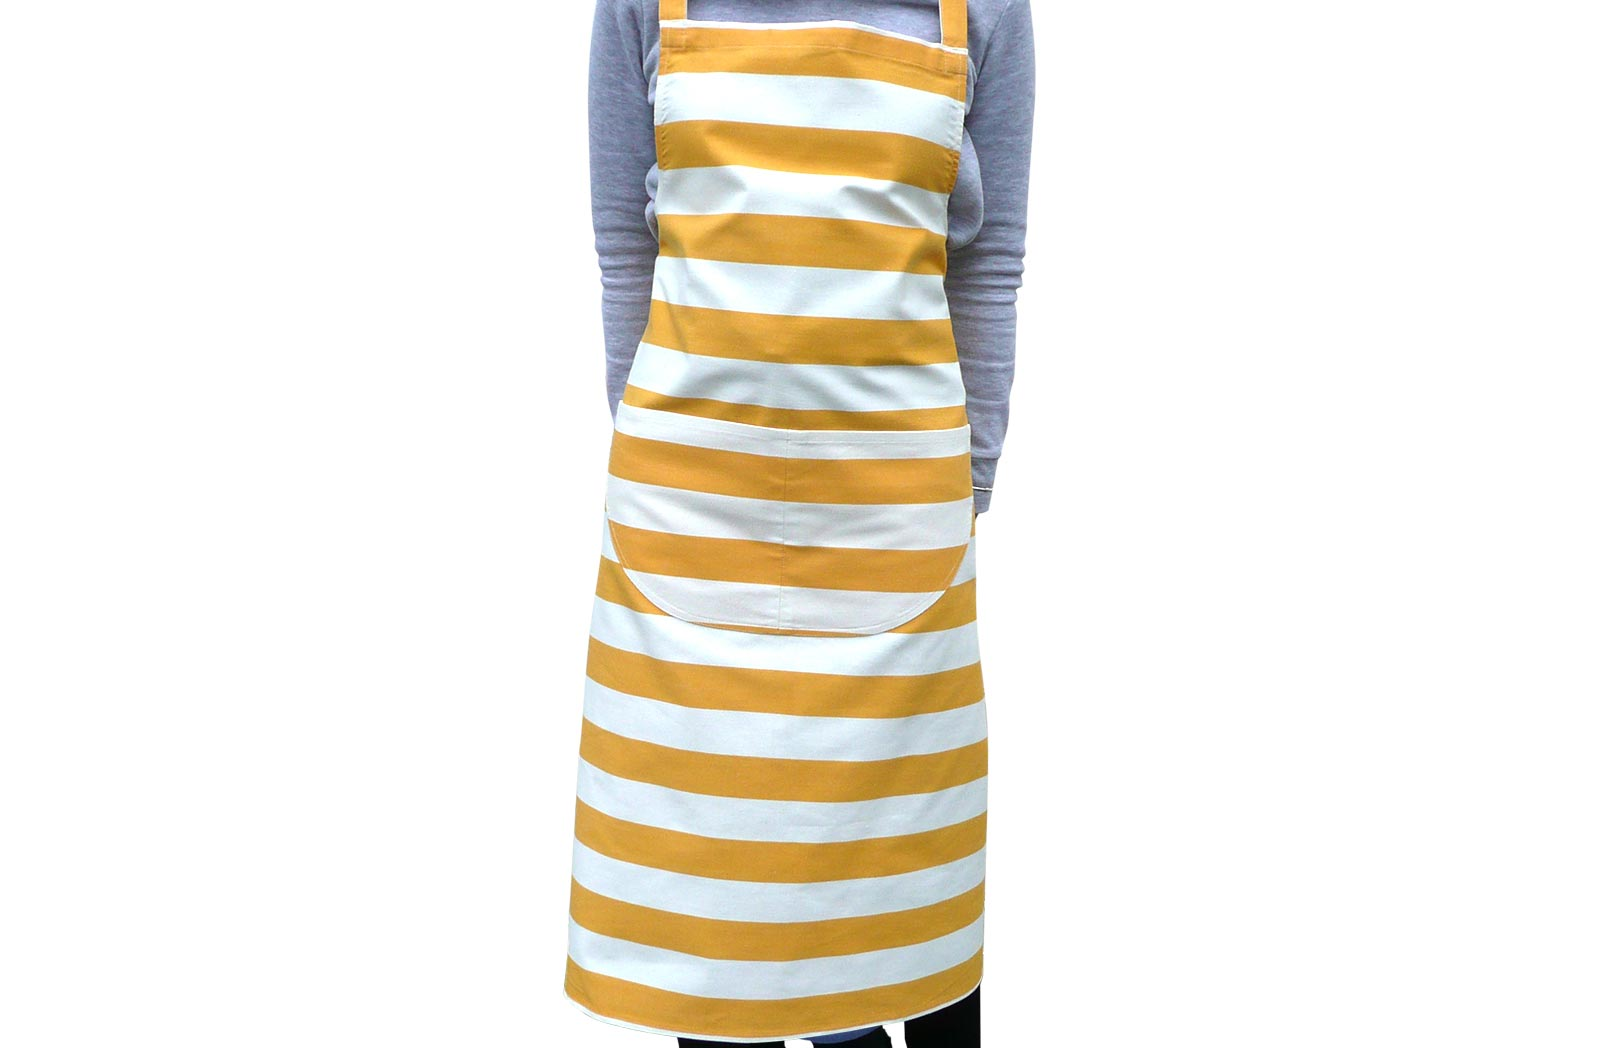 Yellow and White Striped Aprons